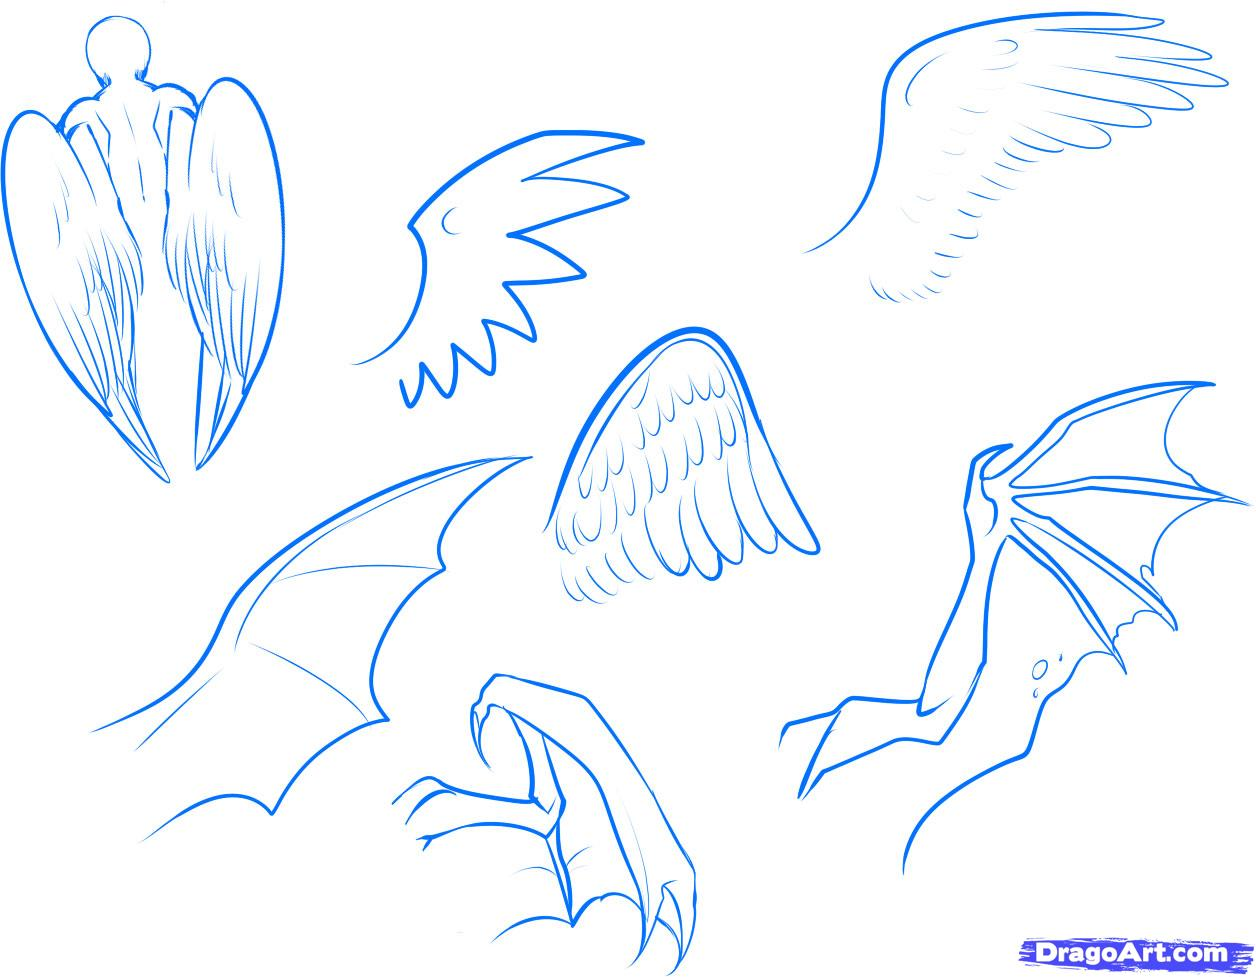 1256x977 How To Draw Anime Wings, Draw An Anime Angel, Step By Step, Anime